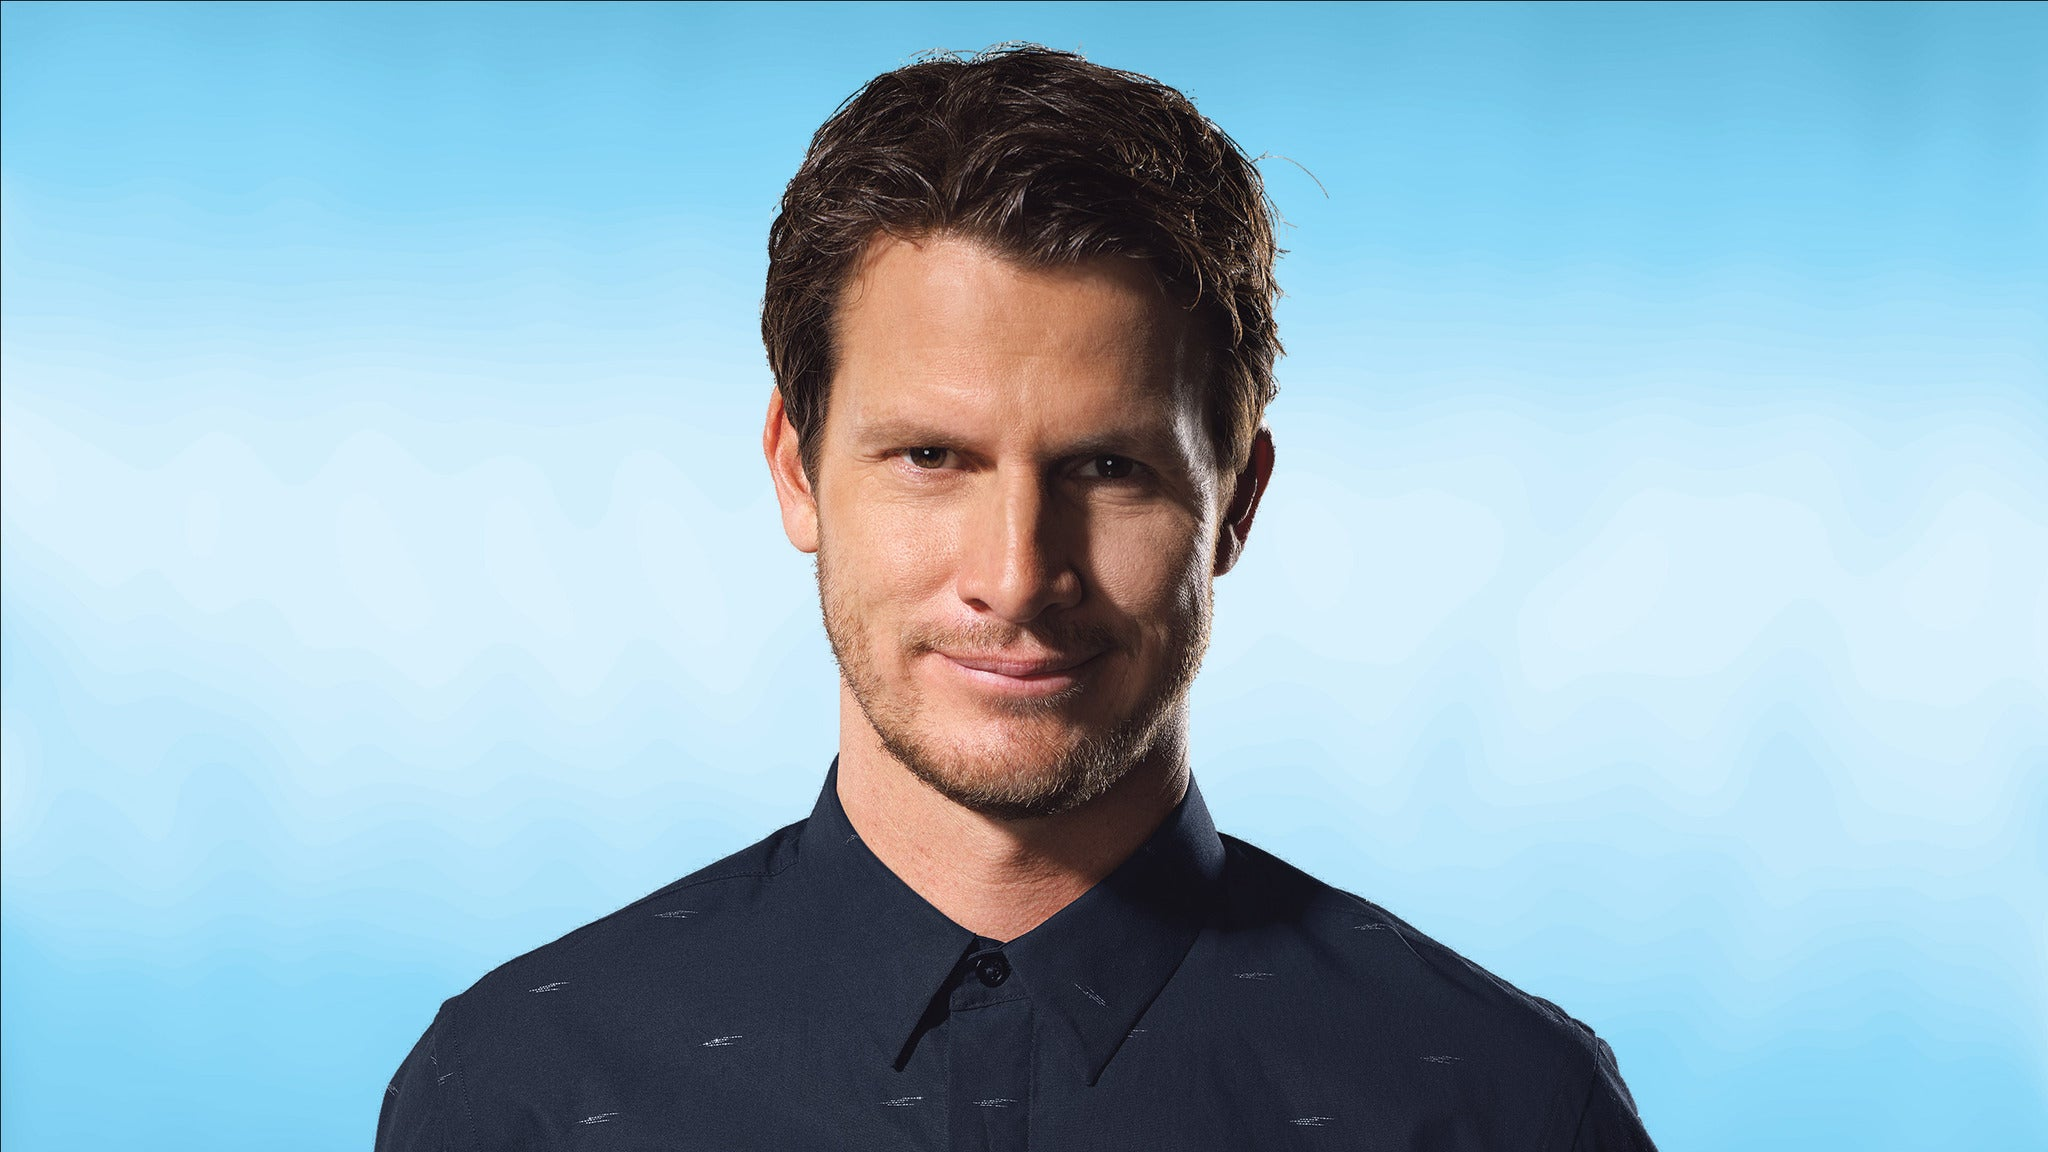 Daniel Tosh at Pechanga Resort and Casino